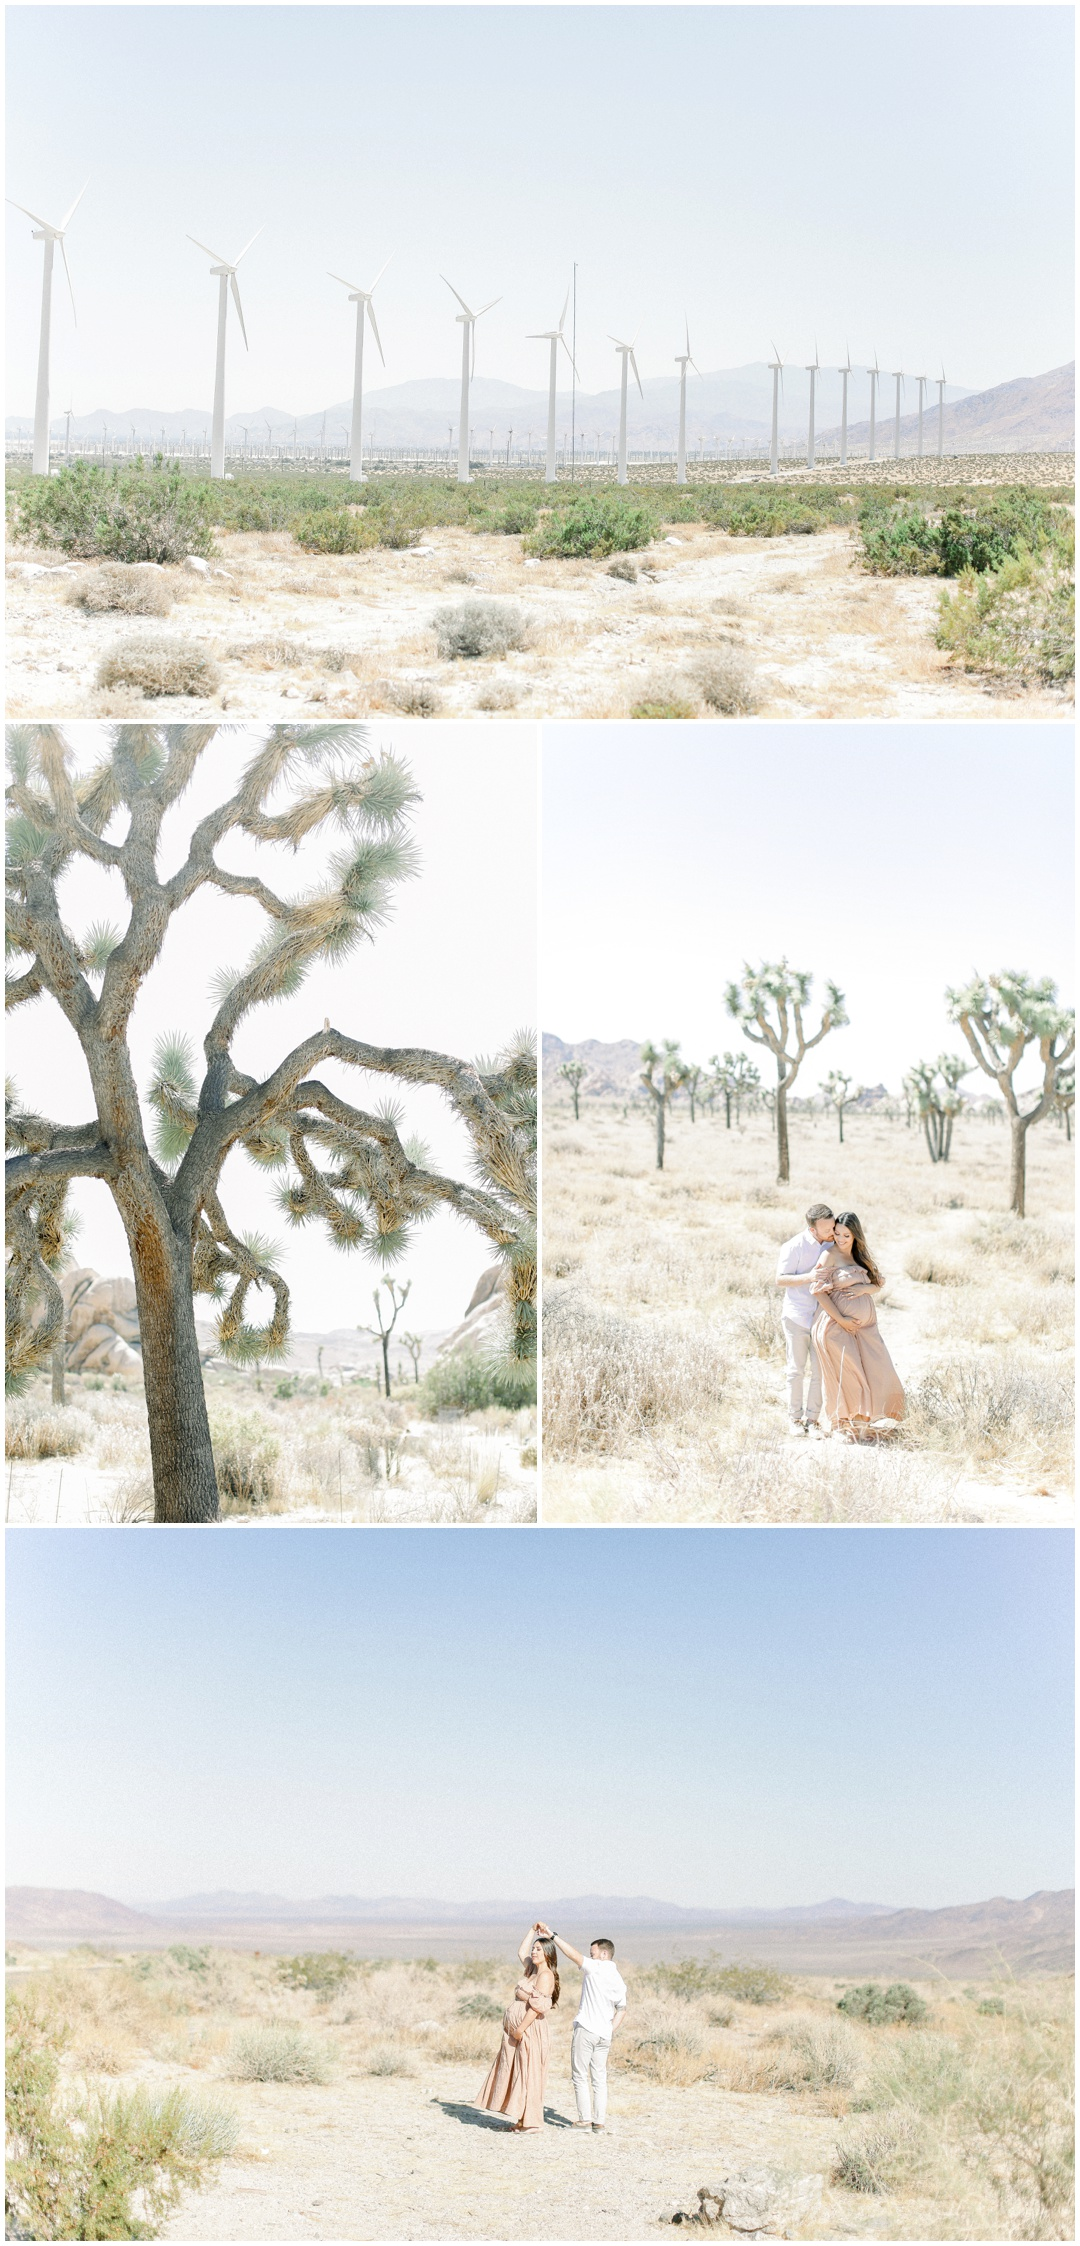 Newport_Beach_Joshua_Tree_Maternity_Photos_Session_Leliani_Hailey_Shane_Hailey_Maternity_Session__4272.jpg